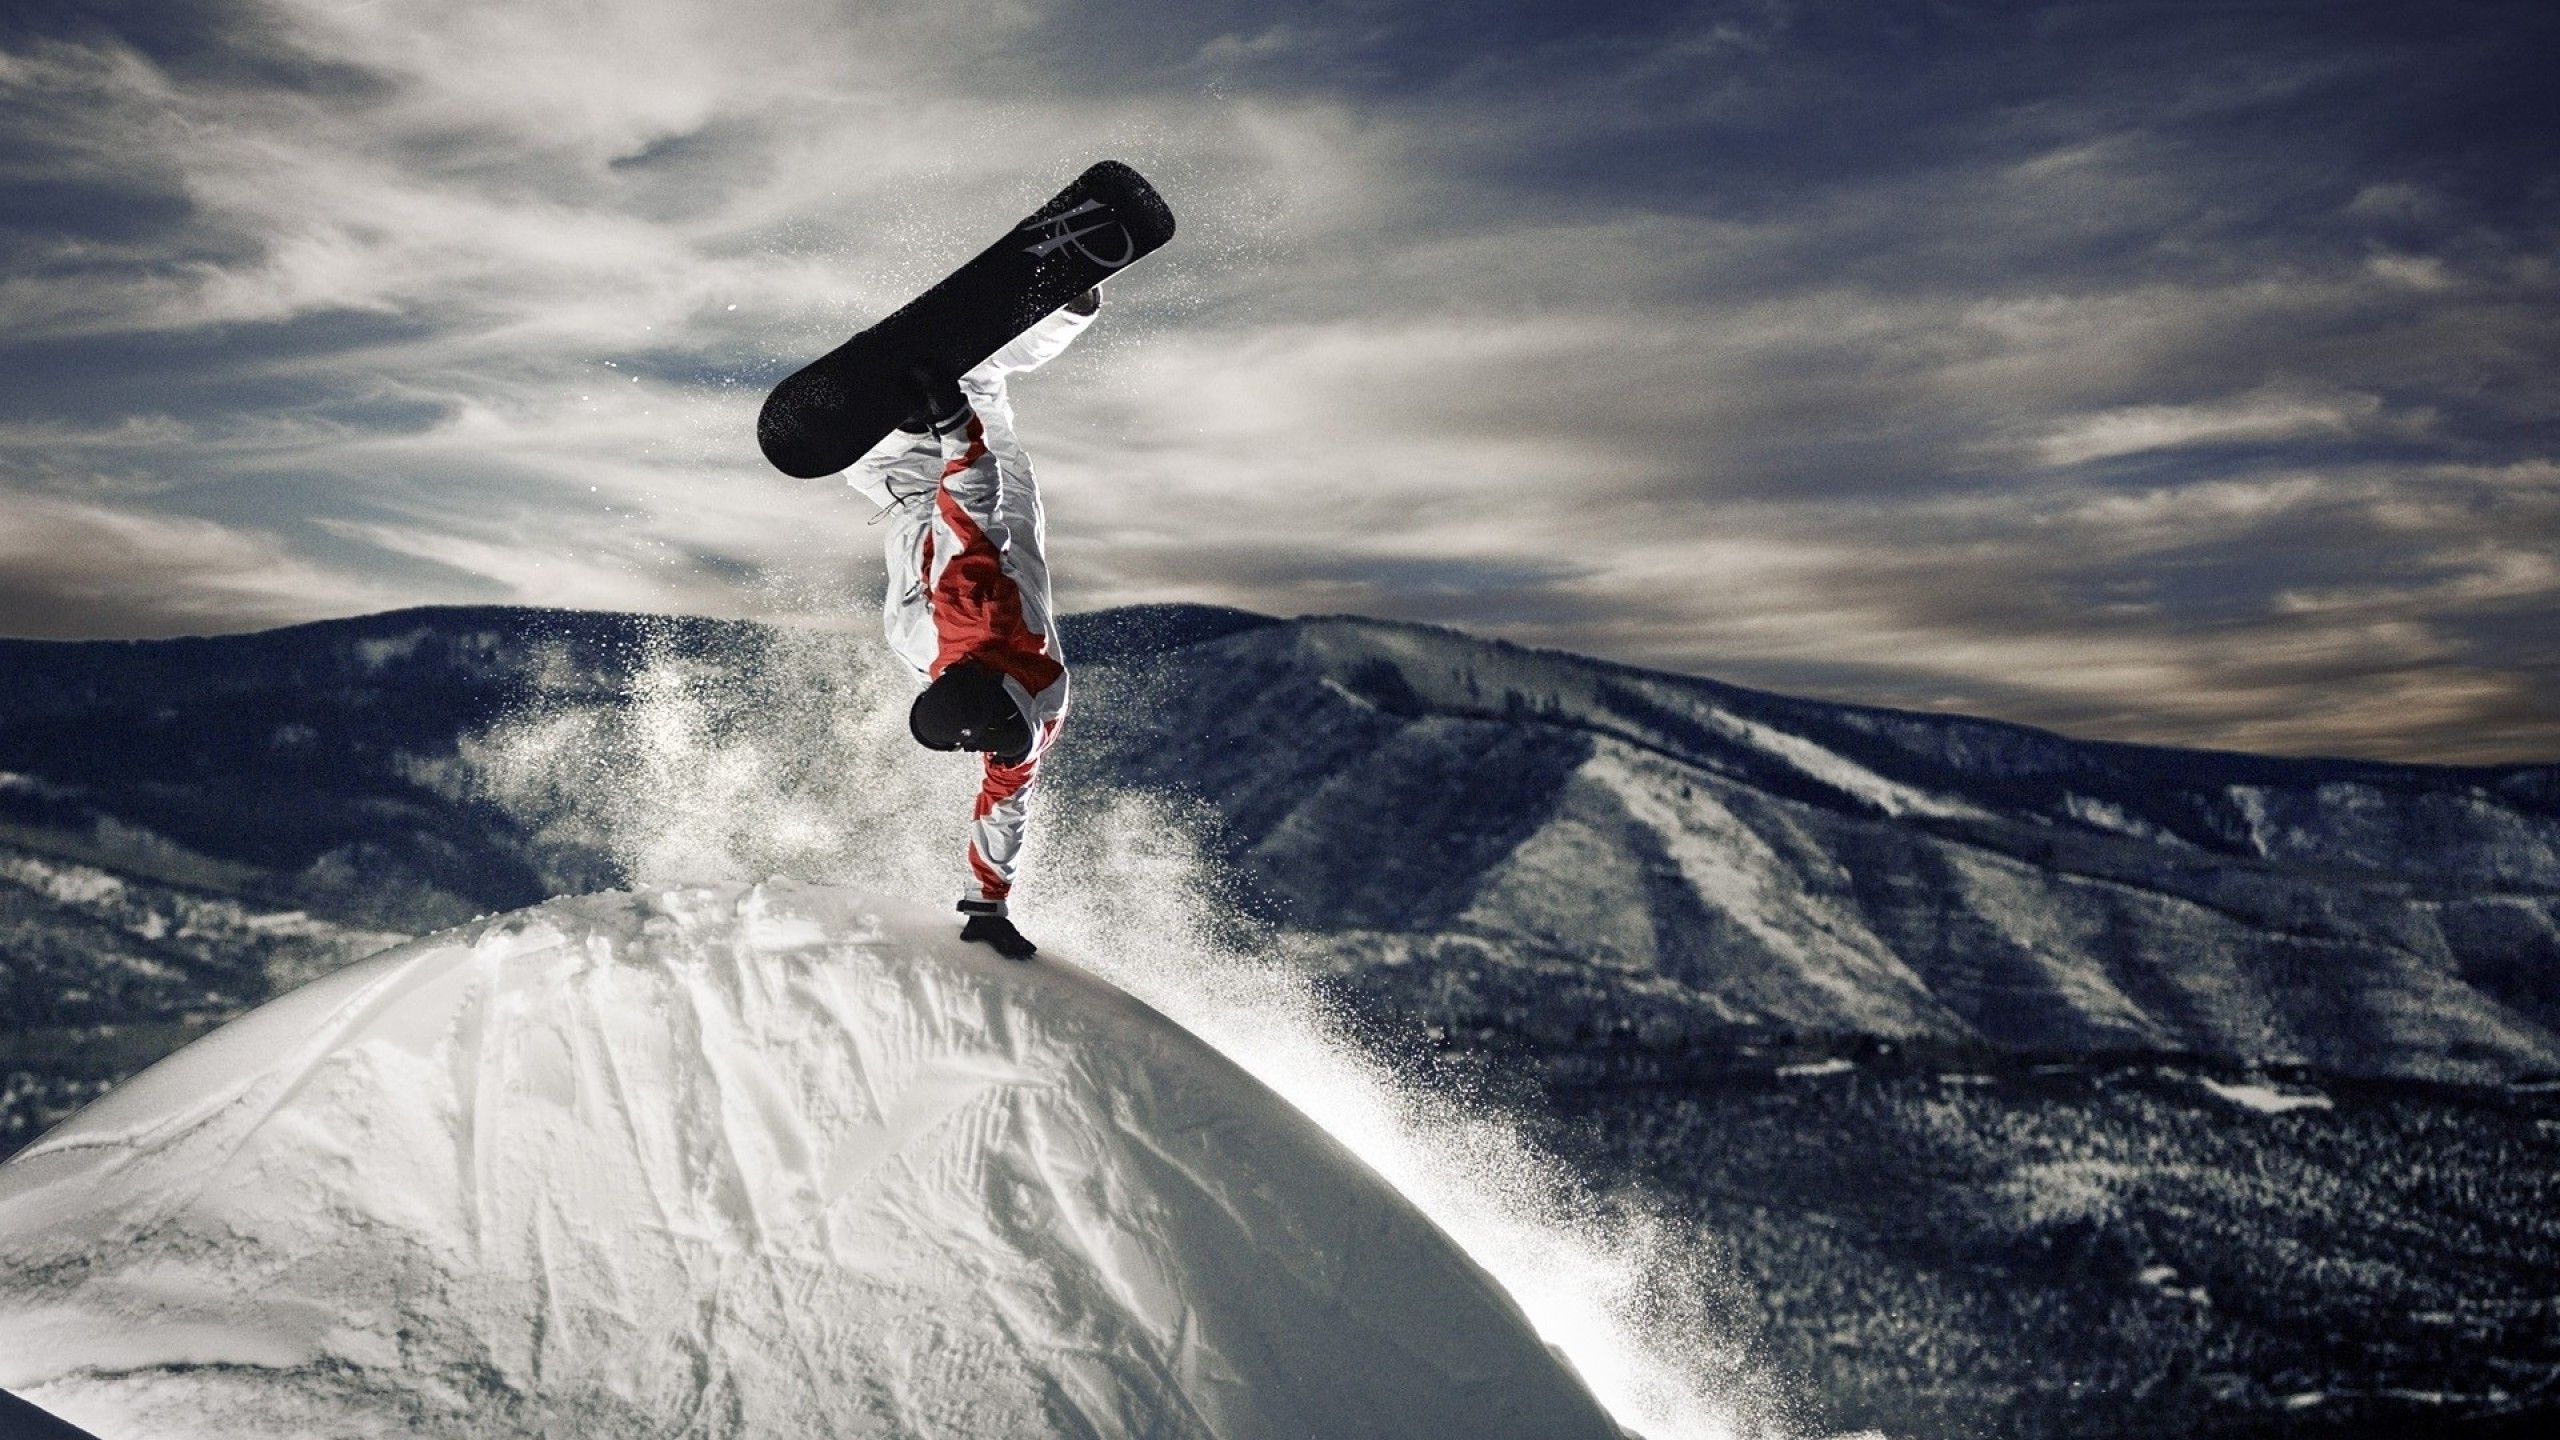 2560x1440 - Snowboarding Wallpapers 13